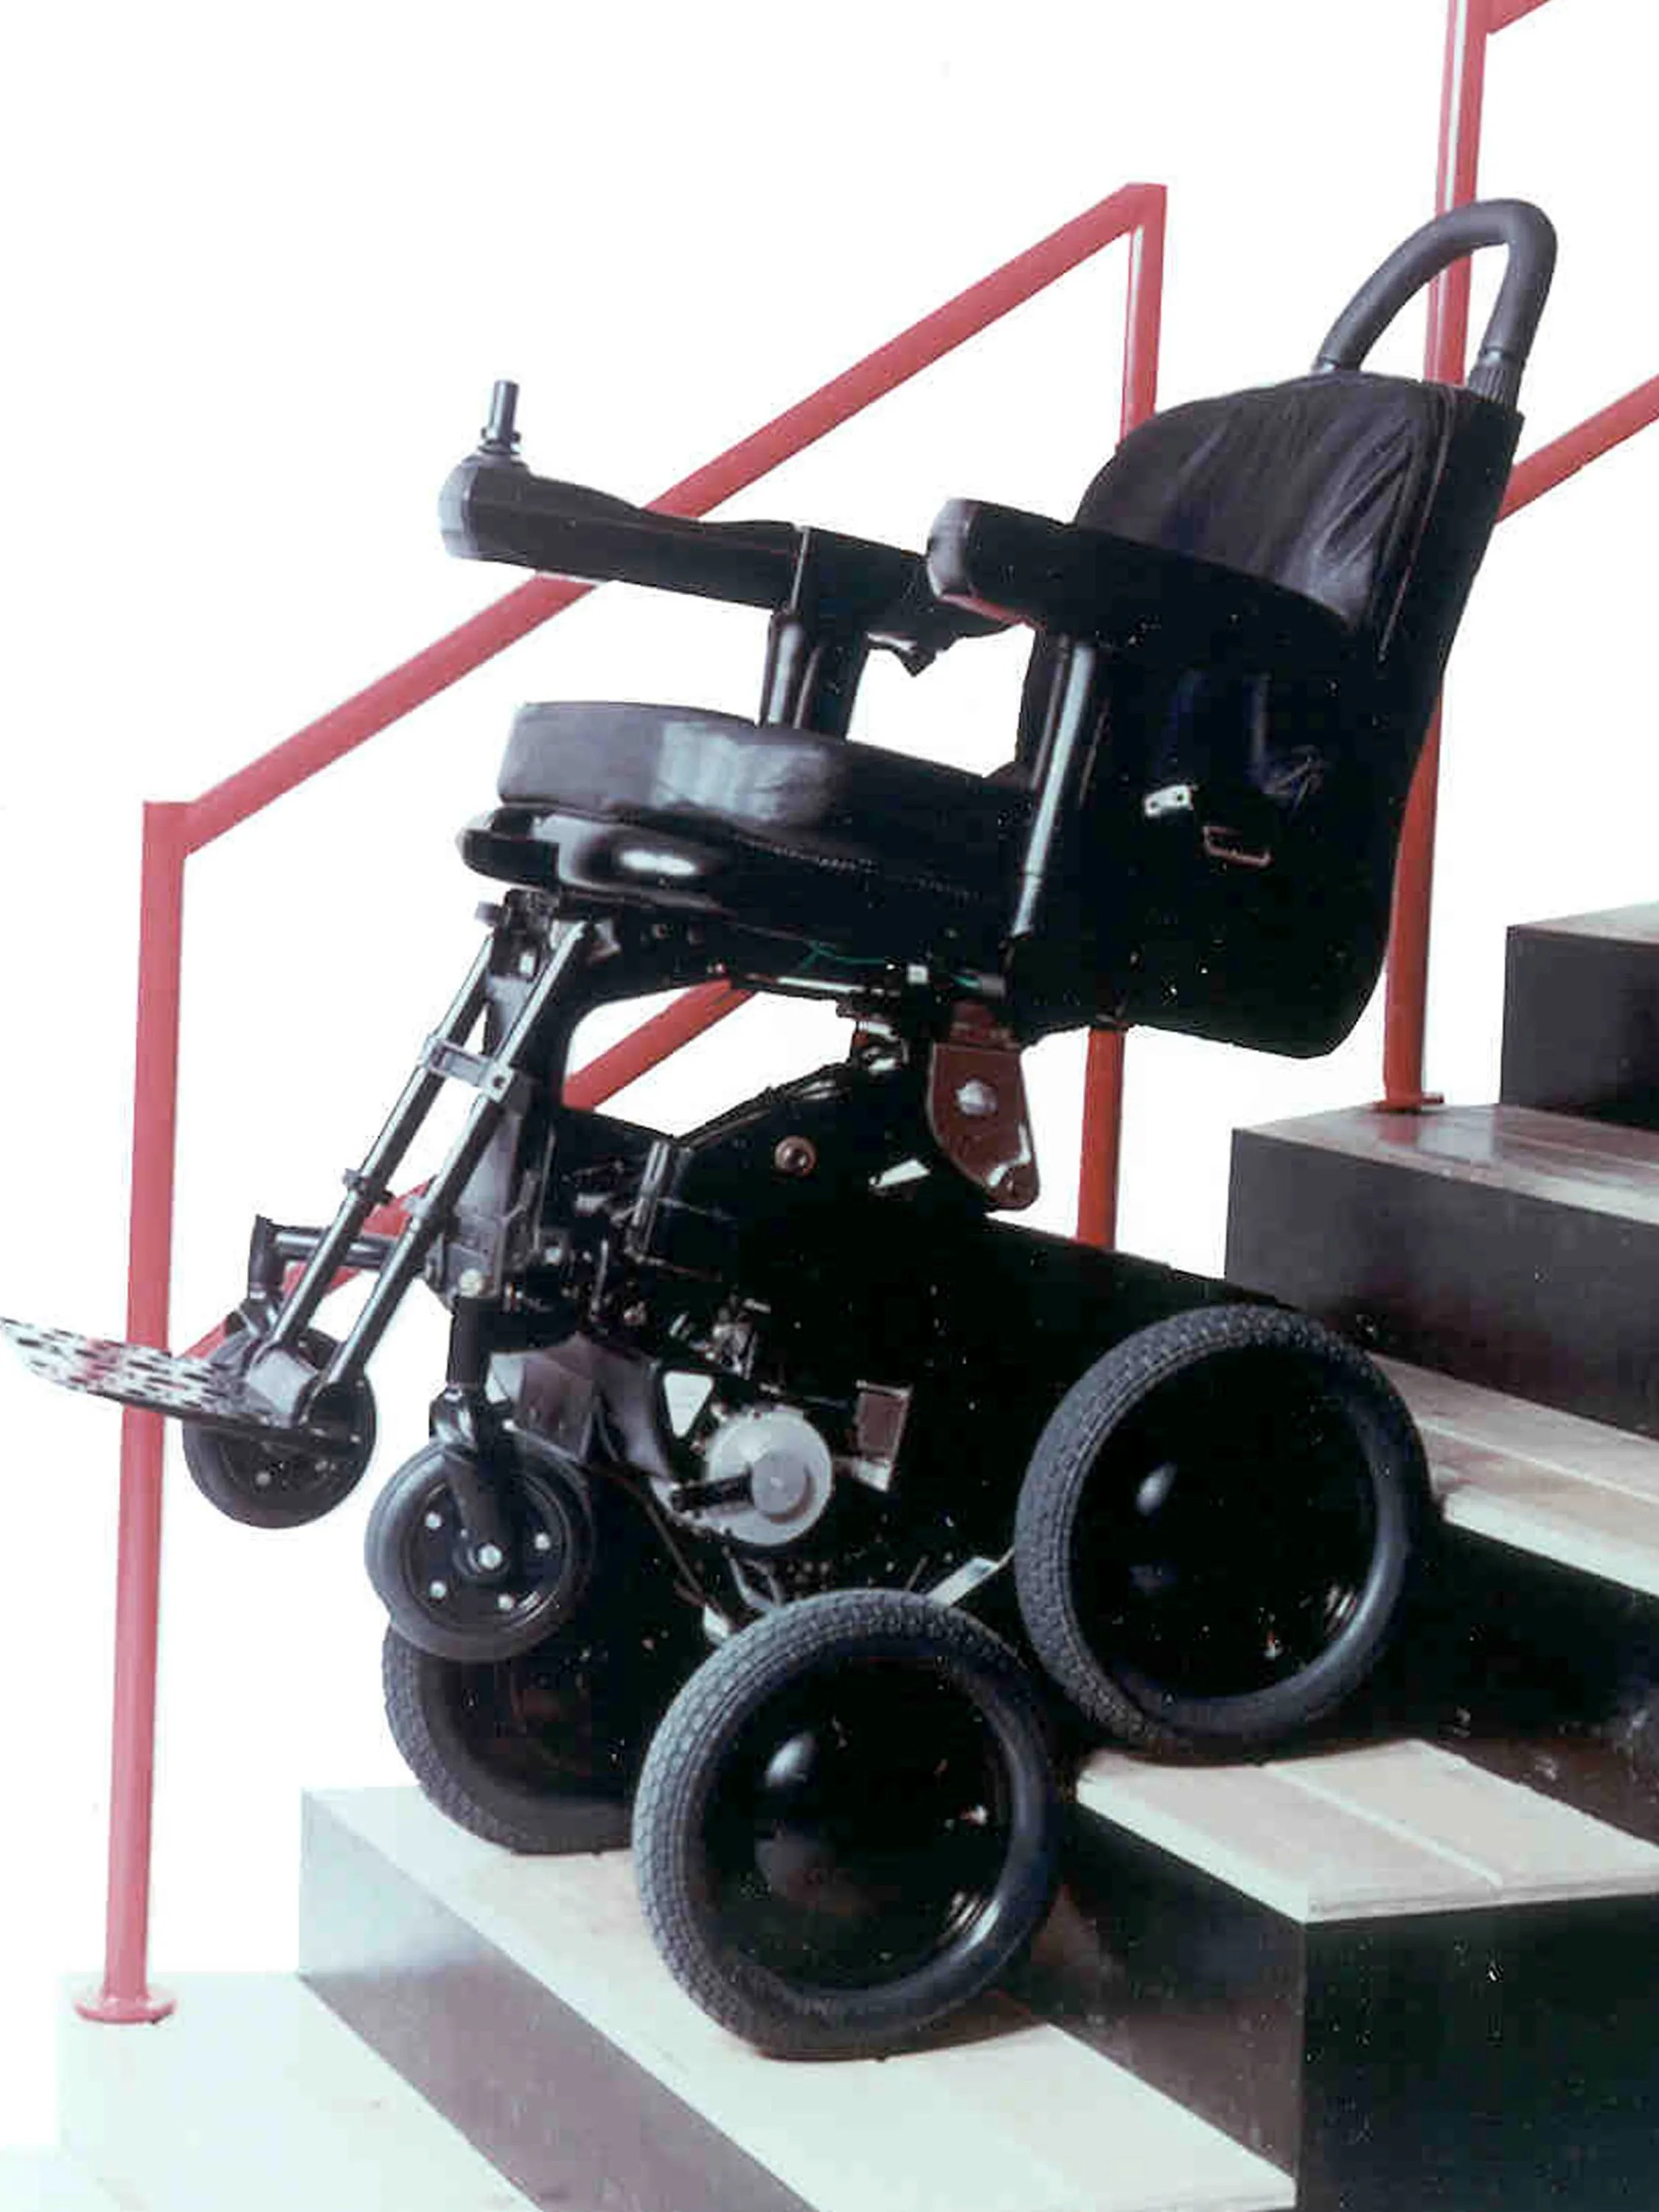 motorized wheel chair evenflo convertible high toyota joins dean kamen on wheelchair that climbs stairs afp 2395712ho101 ibot usa ny